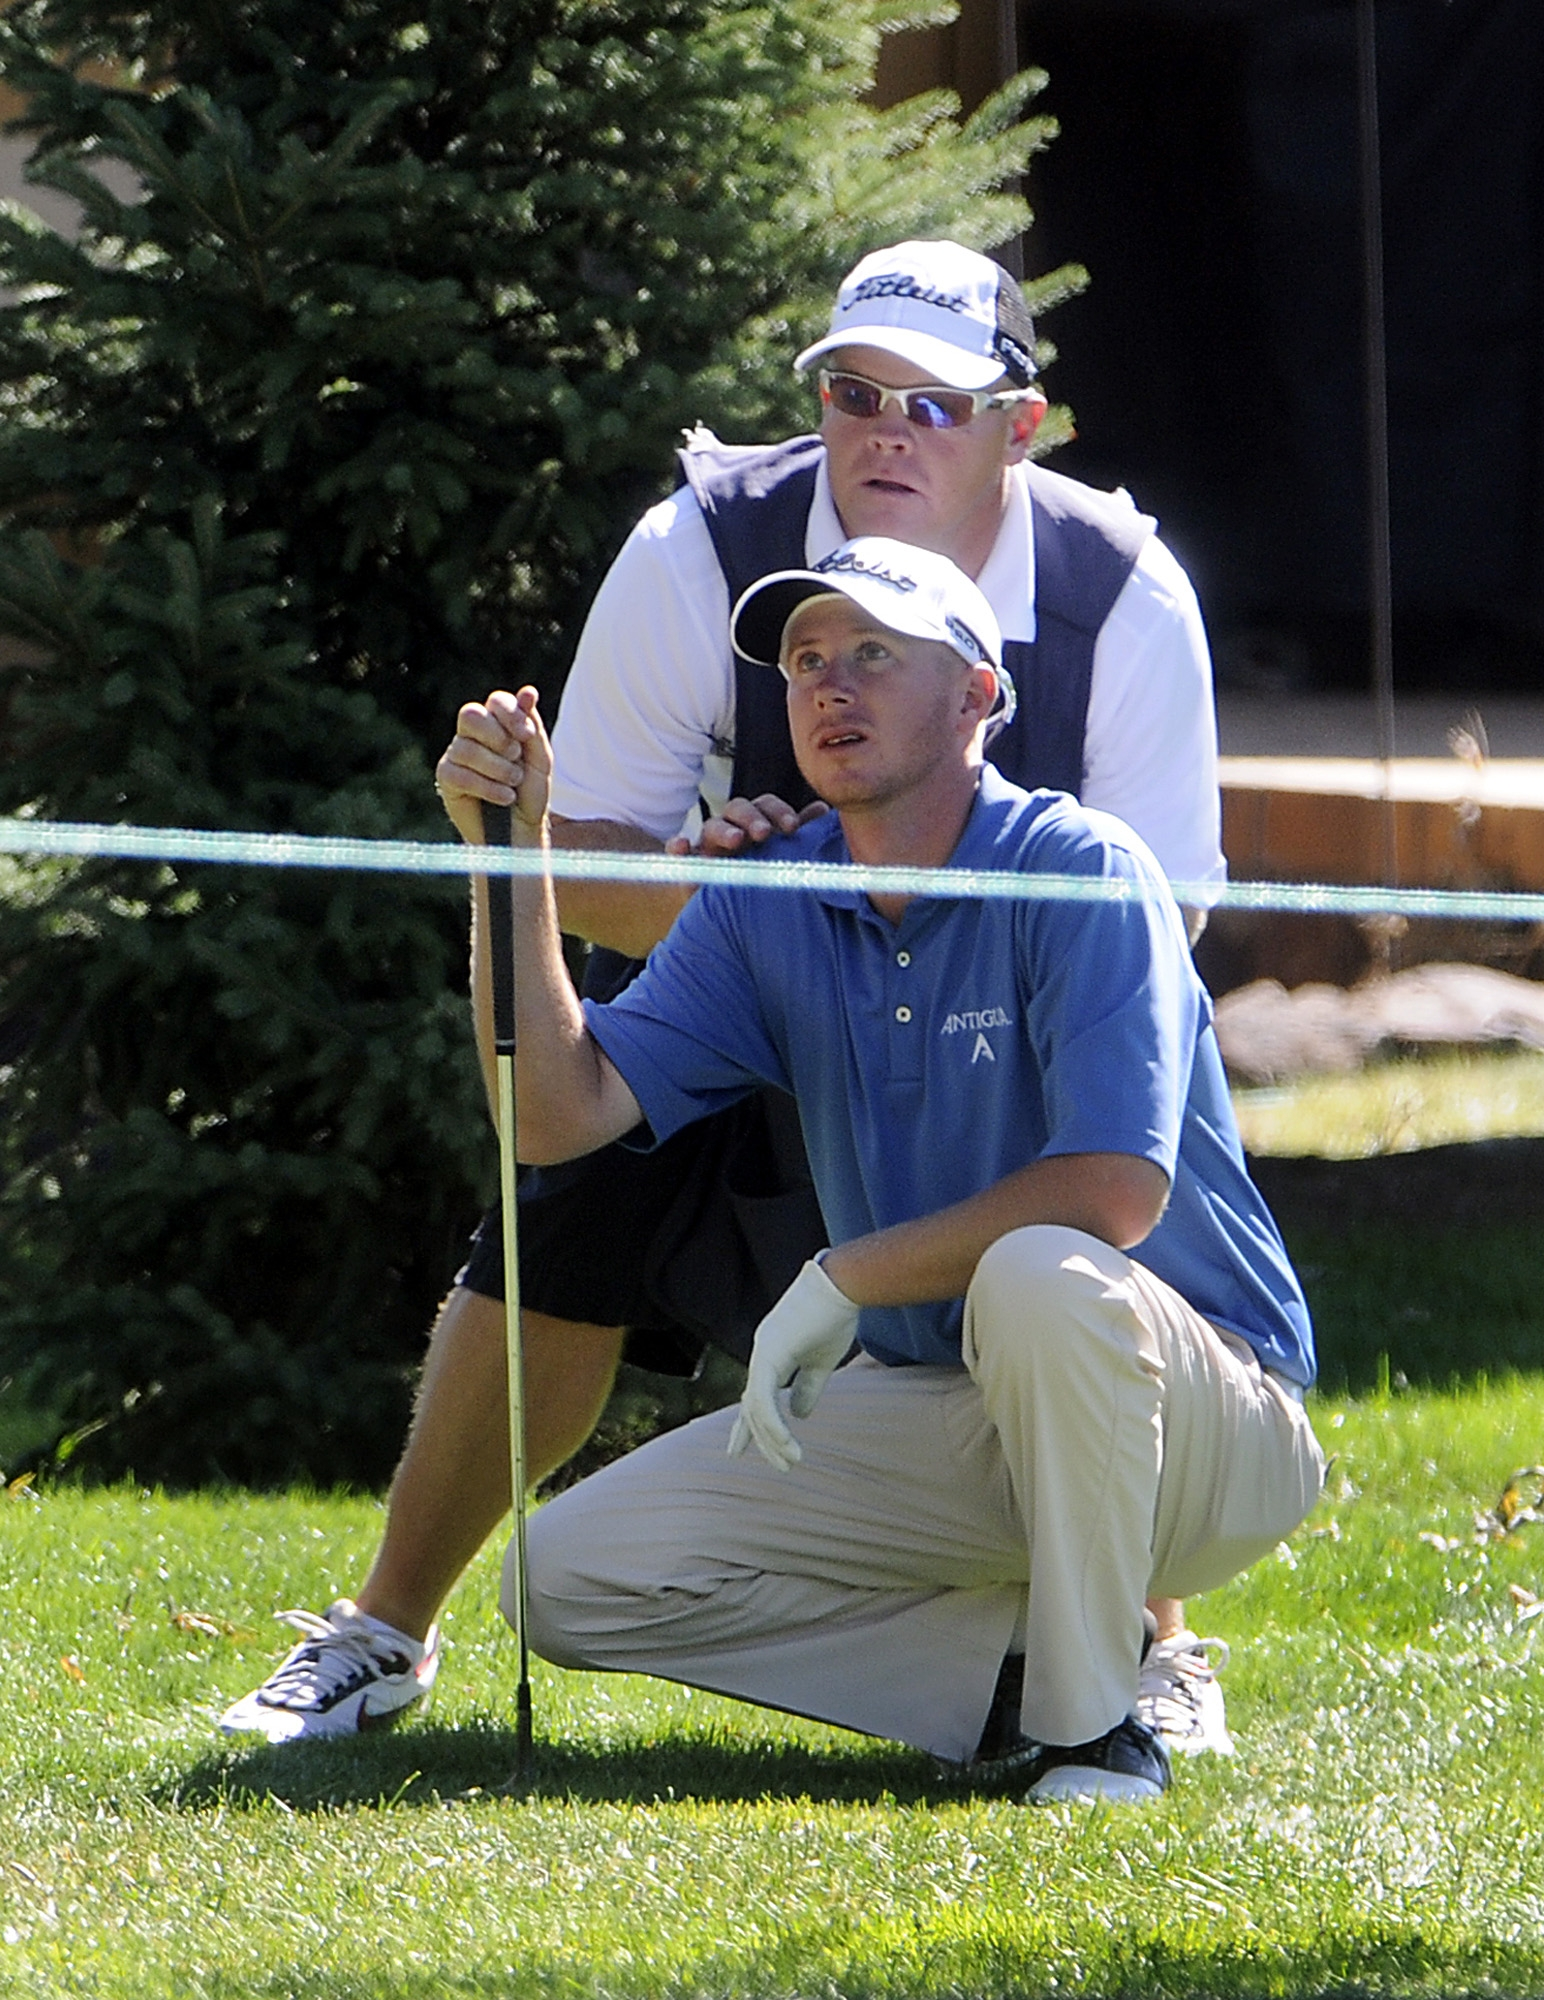 Tyler Aldridge, front, of Nampa, Idaho, checks out the low tree branches he needs to negotiate with help from his caddie Thursday morning, Sept. 11, 2008, on the 12th fairway in the first round of the Nationwide Tour's Boise Open golf tournament in Boise,